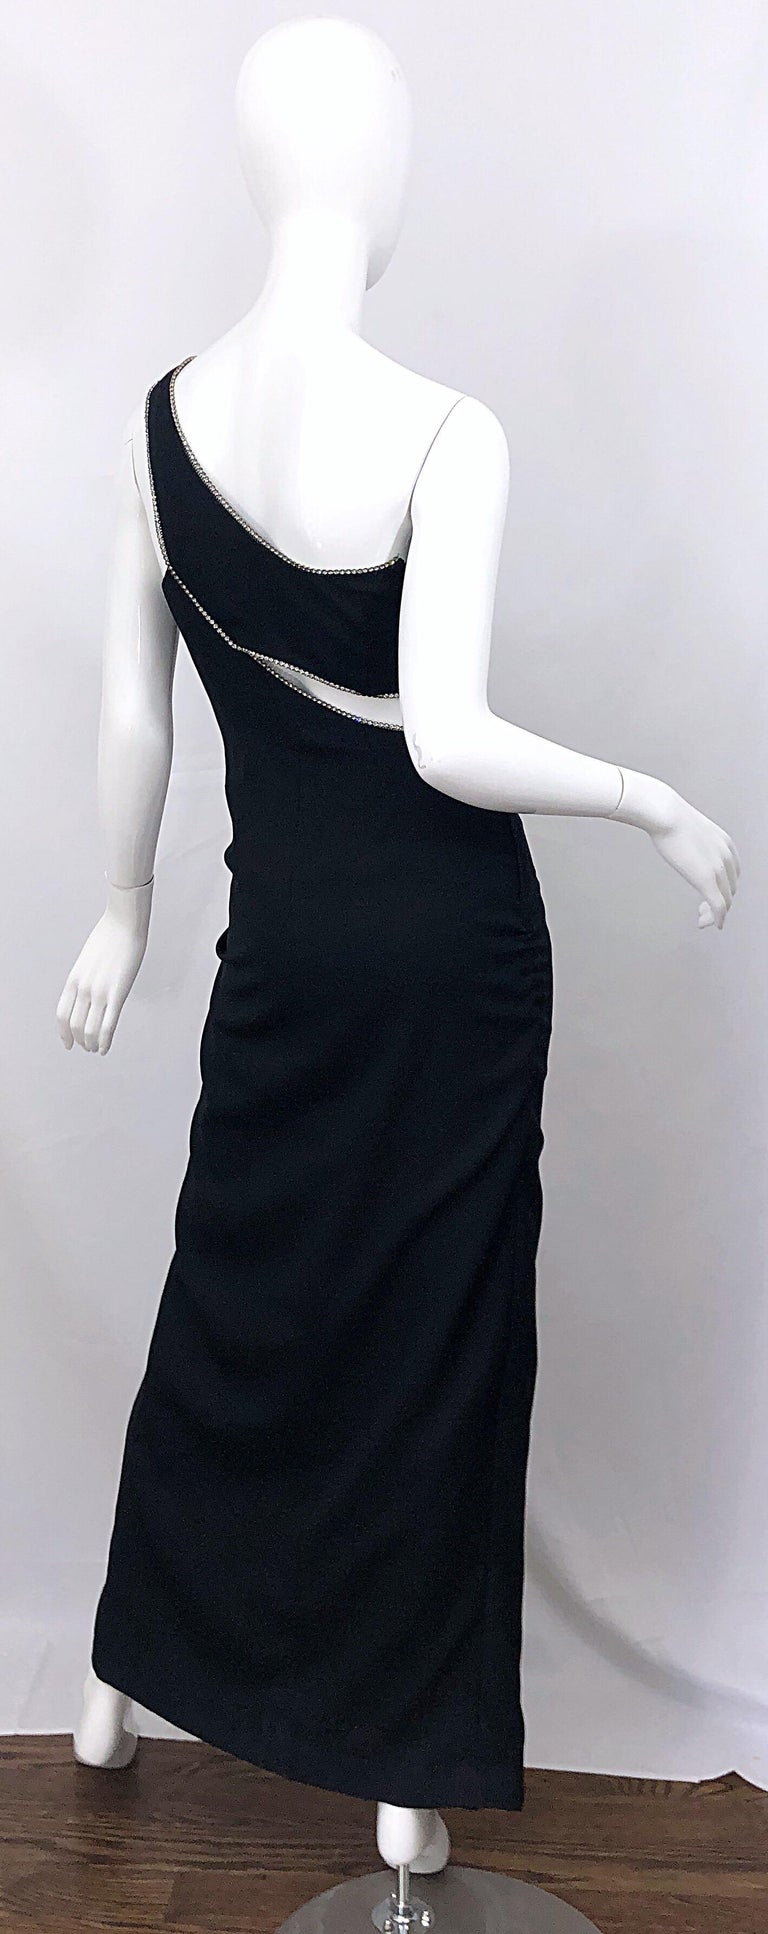 Sexy 1990s Size 6 / 8 Black Crepe Rayon + Rhinestones One Shoulder Cut Out Gown For Sale 4